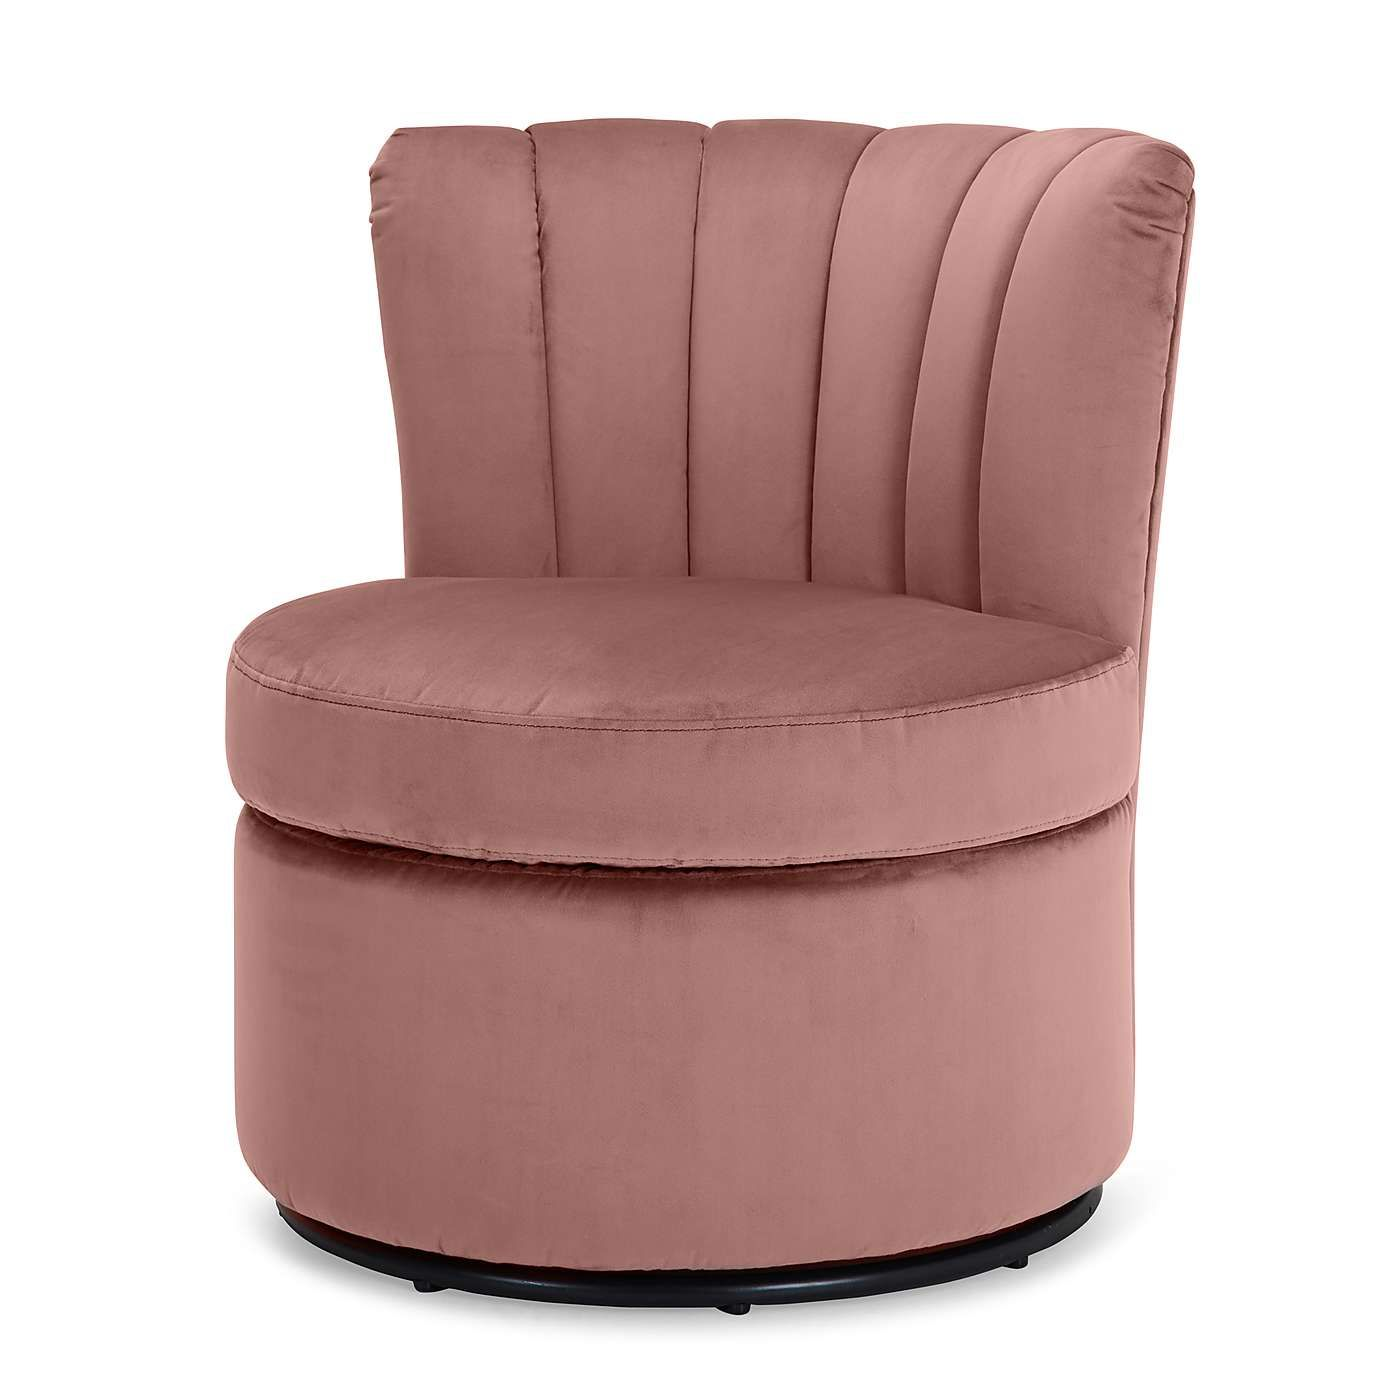 Esme boudoir swivel chair blush pink with images